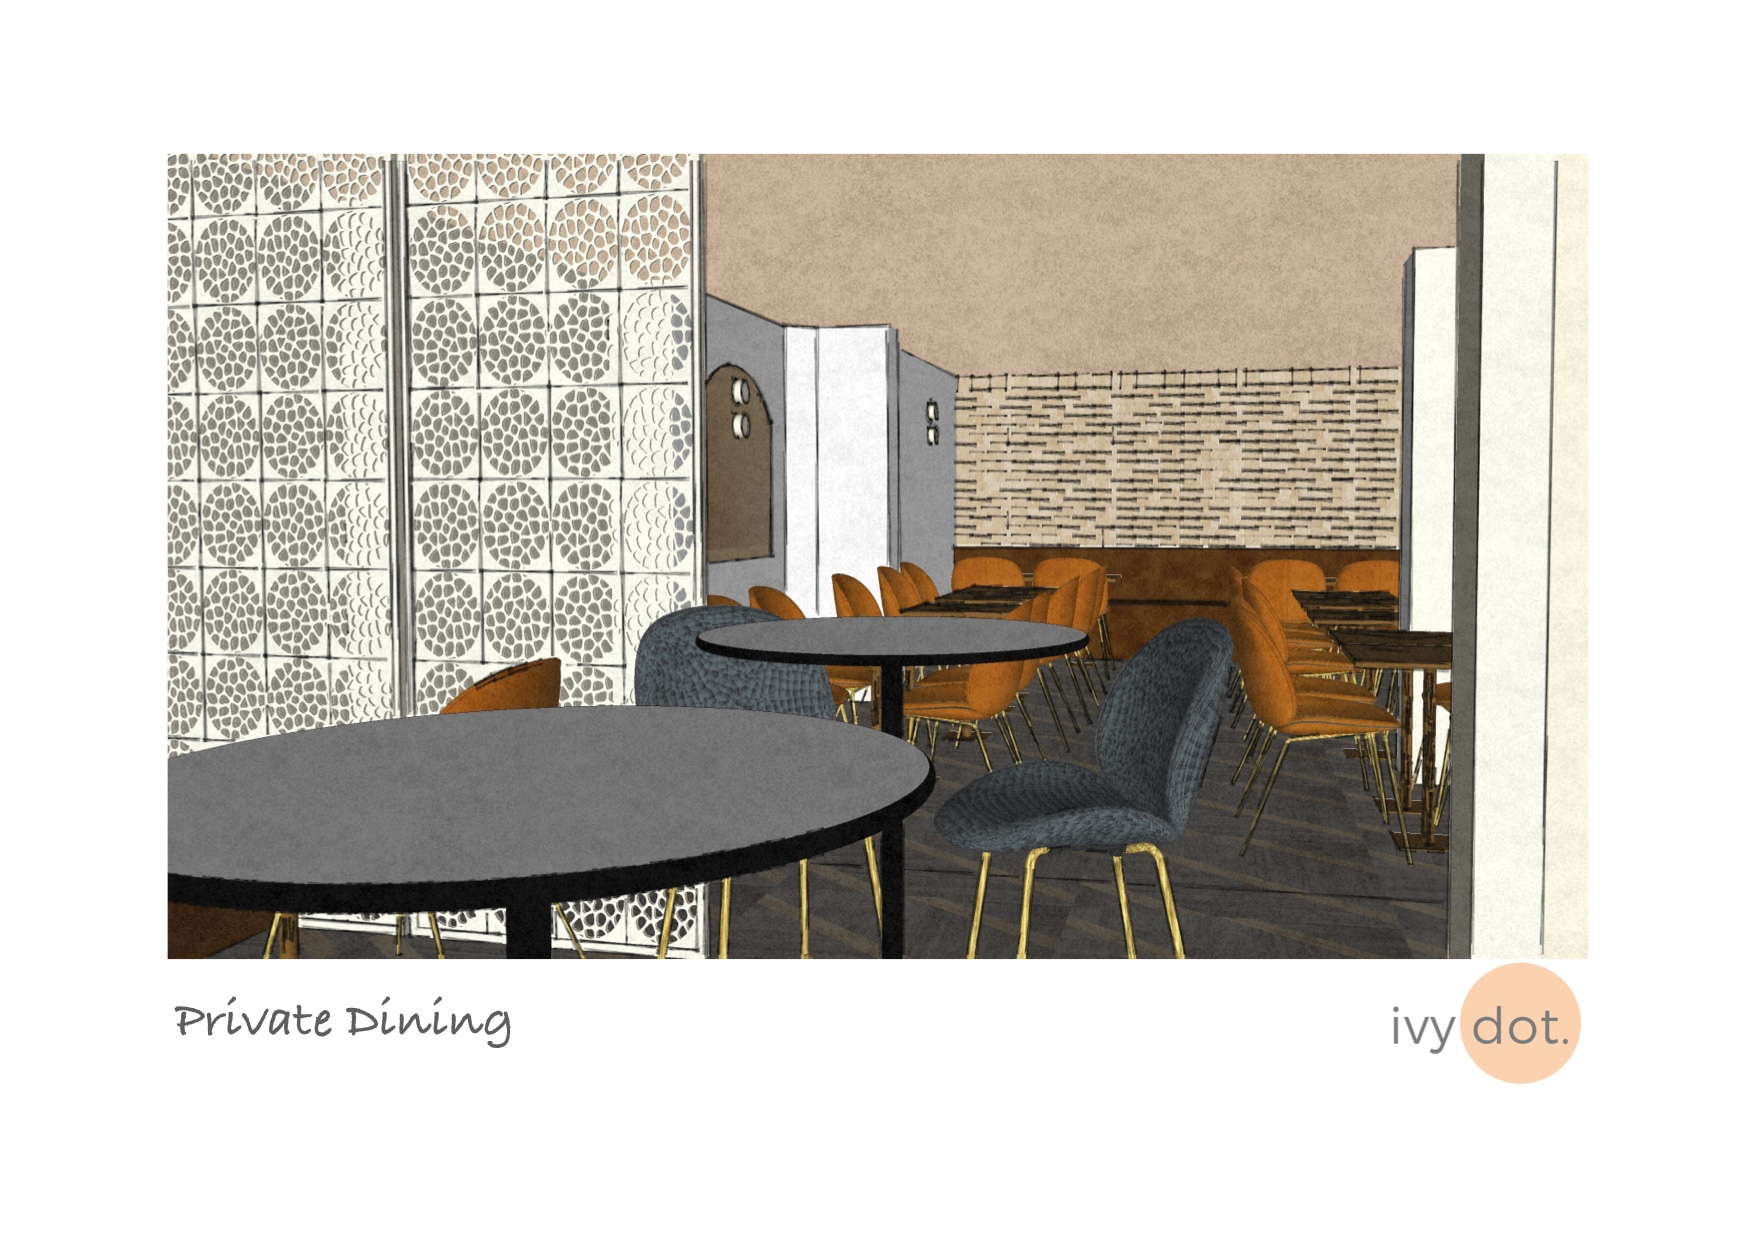 Substantial re-design of a restaurant in Oldham including exterior, concept, moodboards, material samples and floorpans -